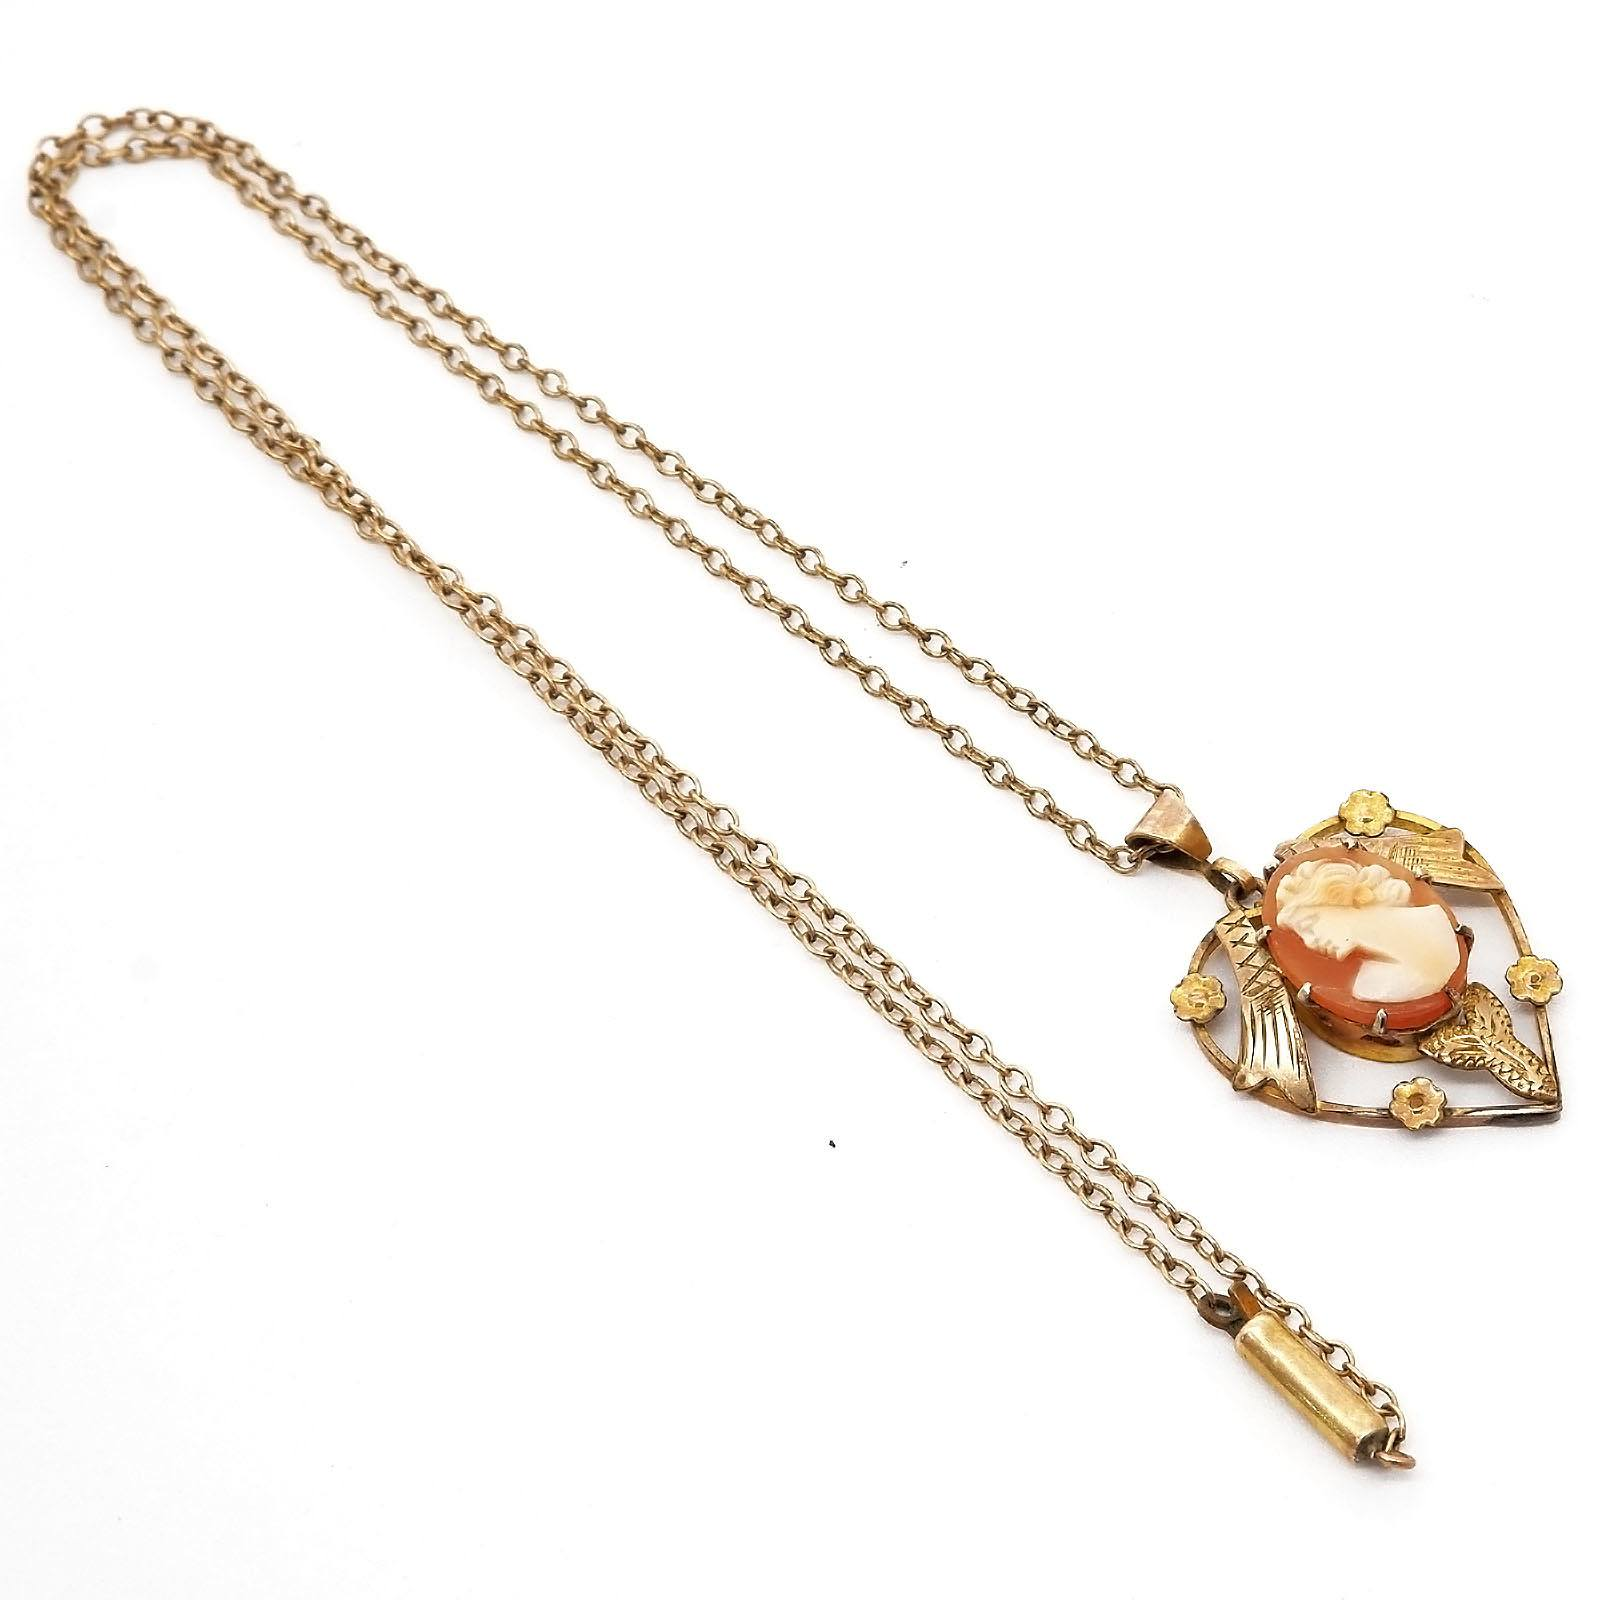 'Antique Rolled Gold Pendant with Shell Cameo on a Curb Link Chain'